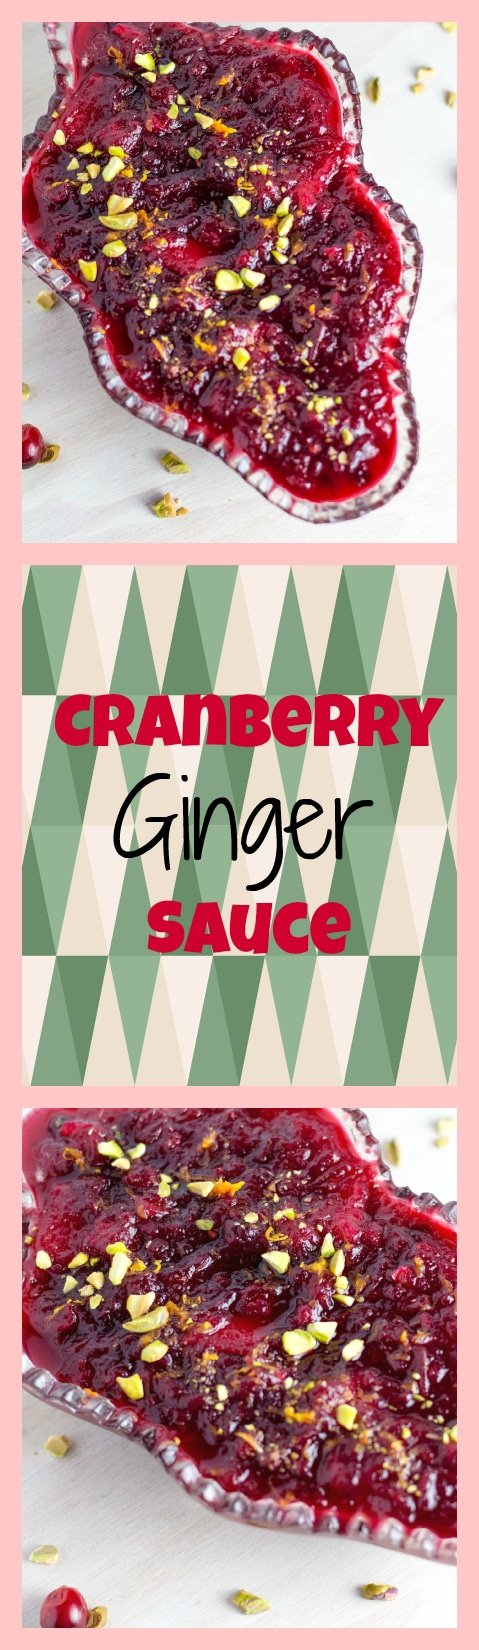 Cranberry Ginger Sauce - SO DELISH! Krollskorner.com